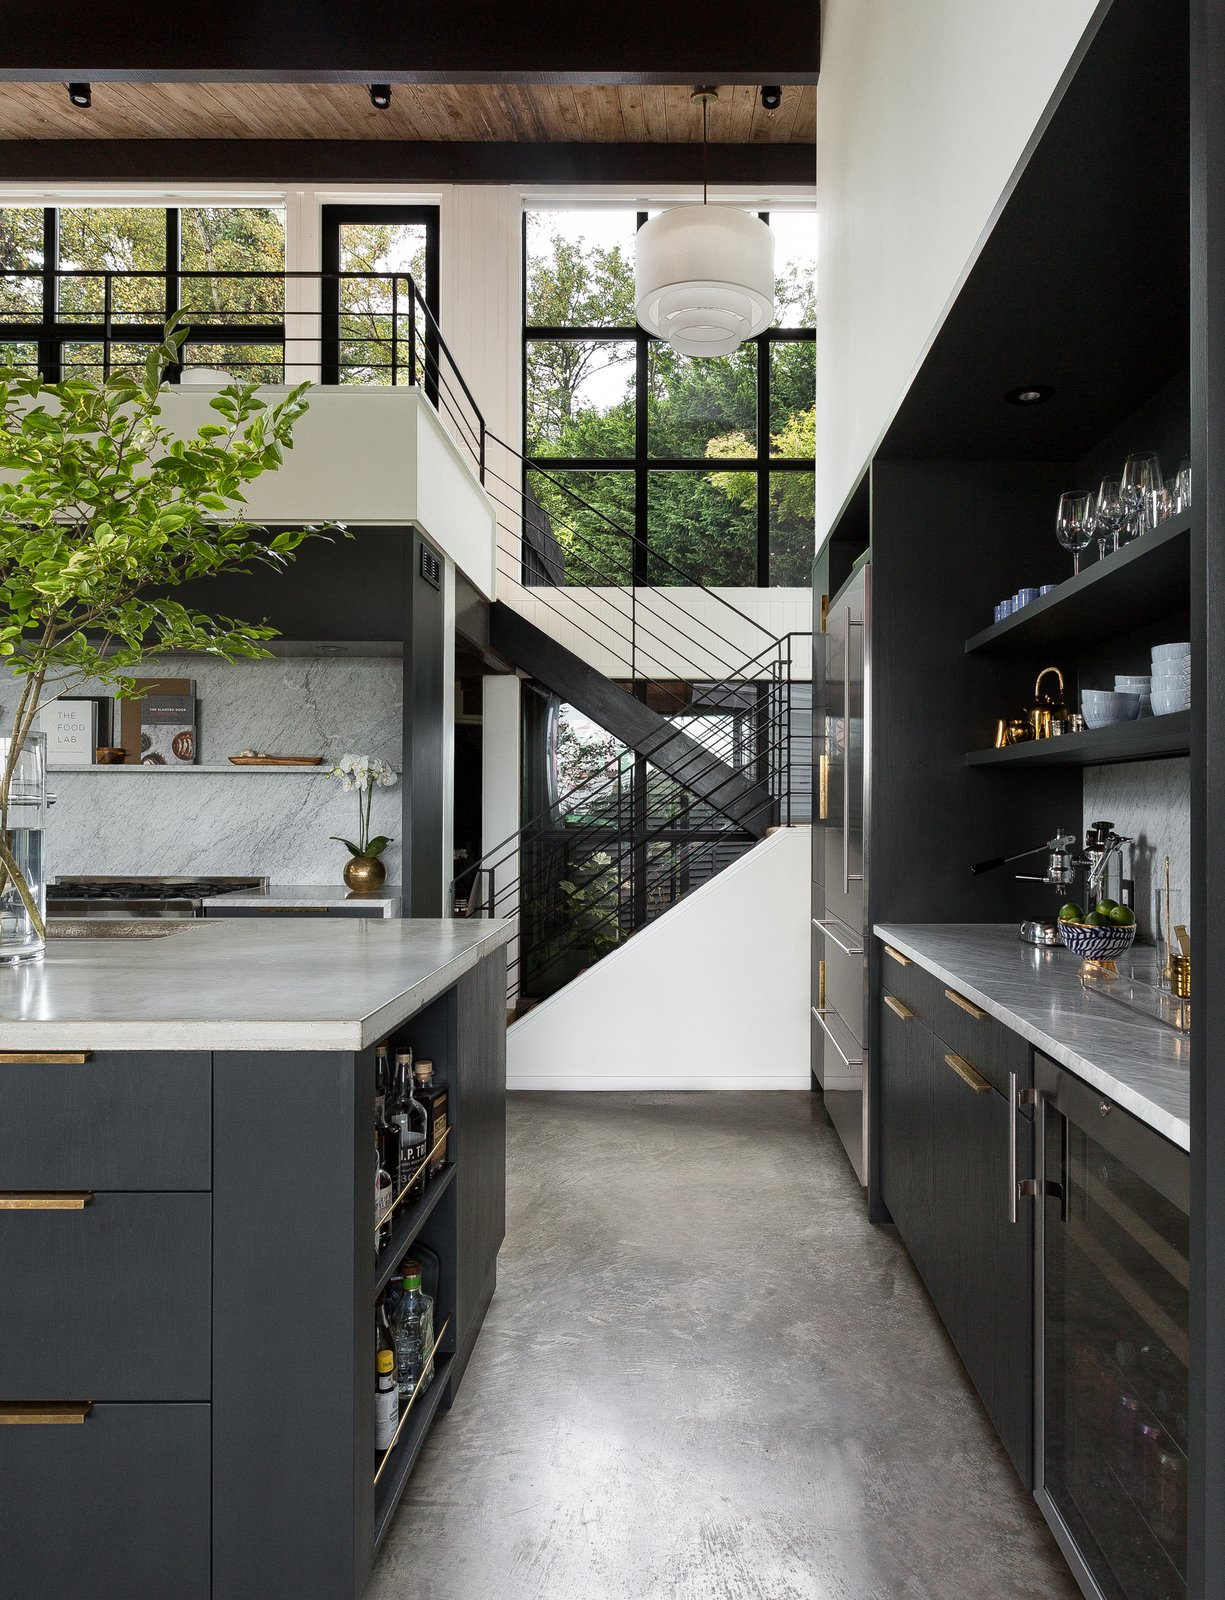 Montlake House kitchen hallway with concrete floors and brass pulls on cabinets